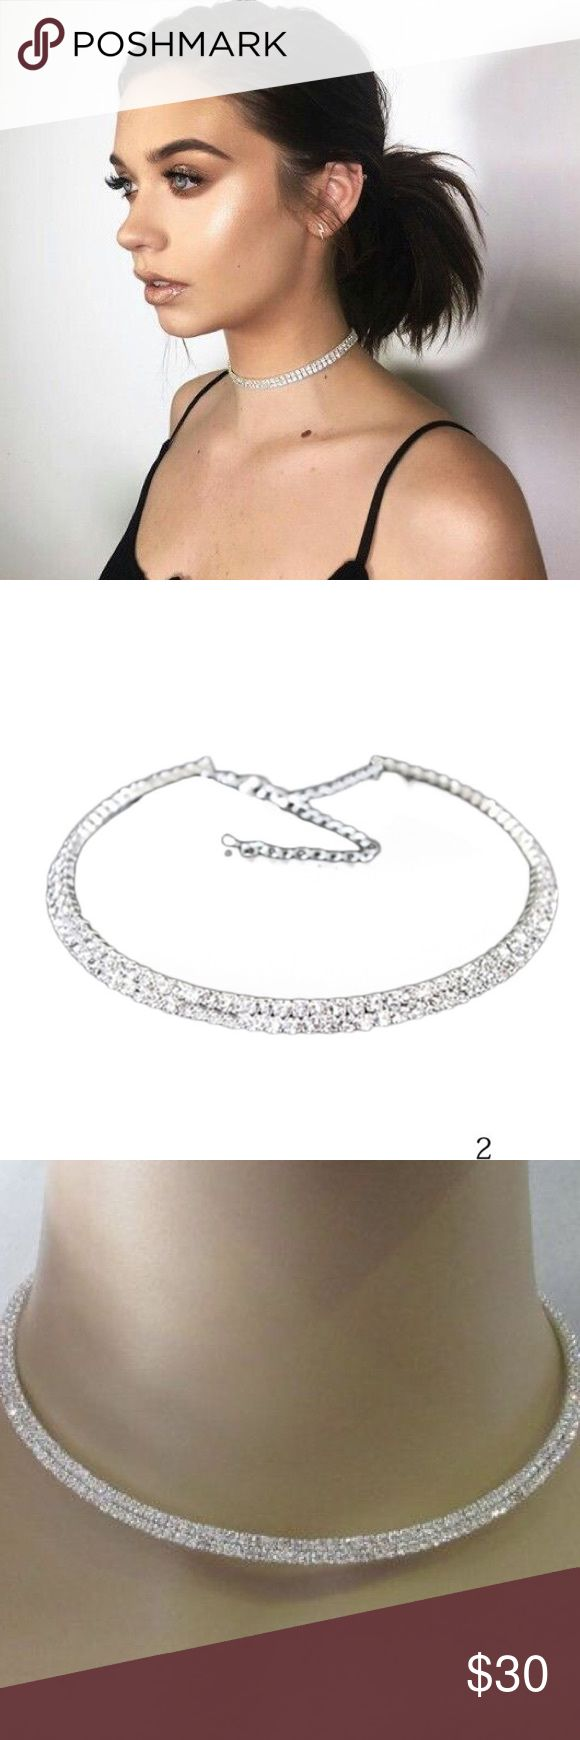 """Diamond Rhinestone Choker Necklace COMING SOON!!!! COMMENT BELOW TO SECURE YOURS TODAY  Two-layer Diamond Rhinestones • Silver coated hardware • Size (Diameter):4.7"""" (approx 12cm) • Adjustable hook Clasp • Affordable Luxury • (As seen on Bella + Gigi Hadid, Kim Kardashian, Kylie + Kendall Jenner, and many more celebrities ** Not Nasty Gal) Nasty Gal Jewelry Necklaces"""